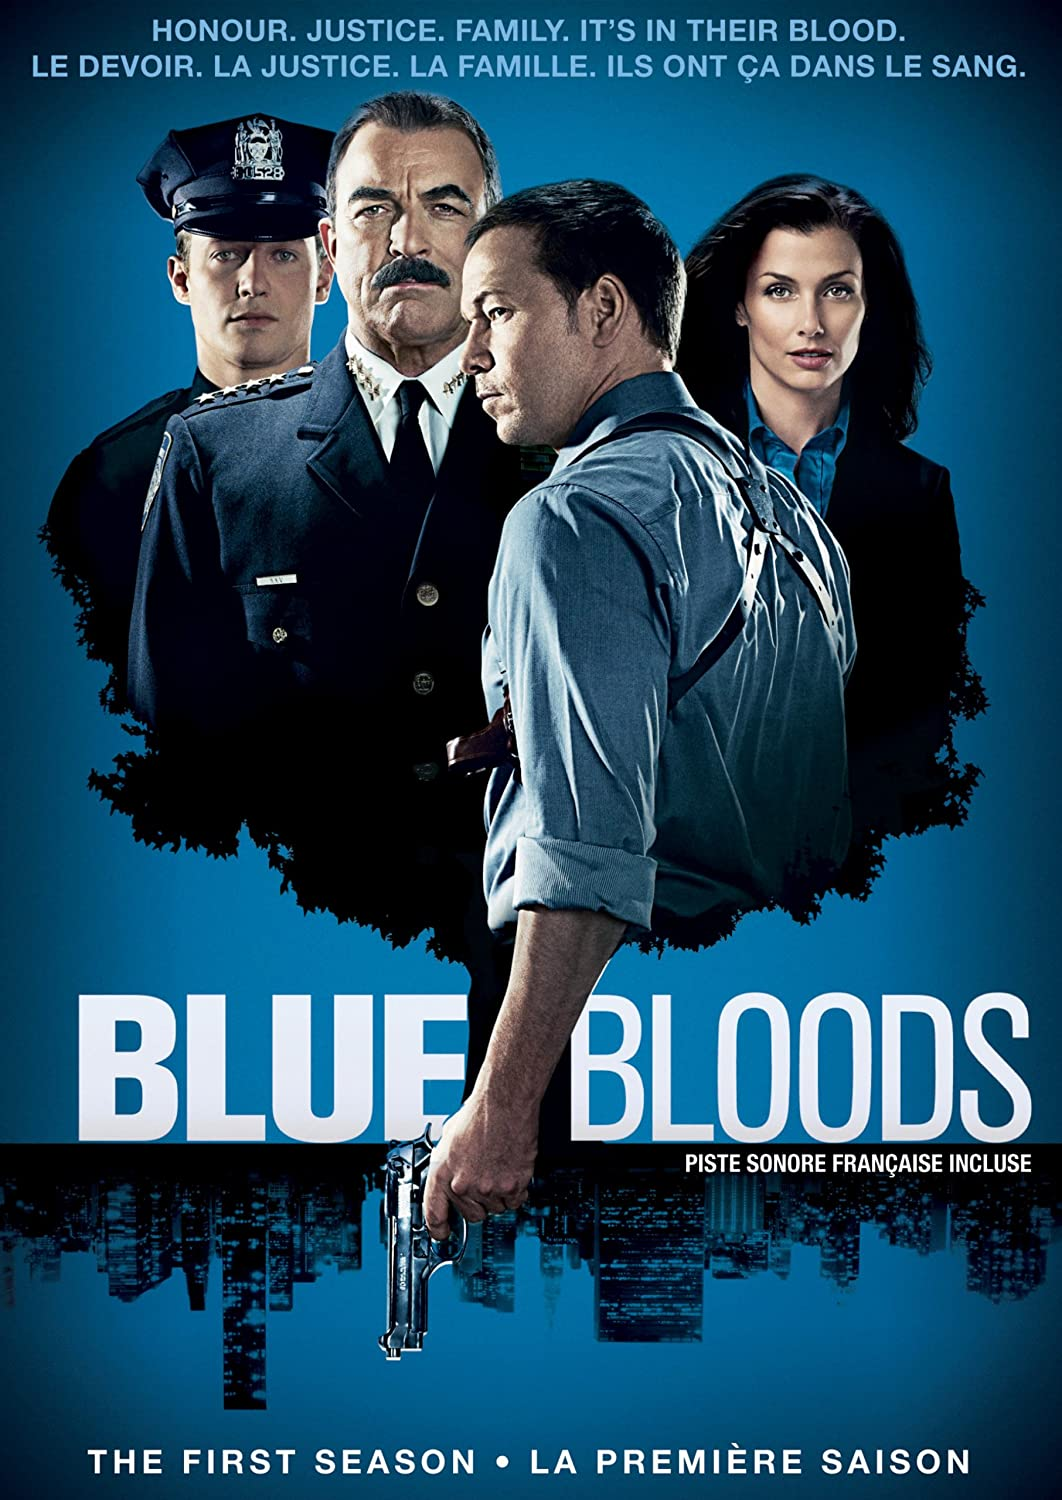 Blue Bloods: The First Season (Sous-titres français) Tom Selleck Donnie Wahlberg